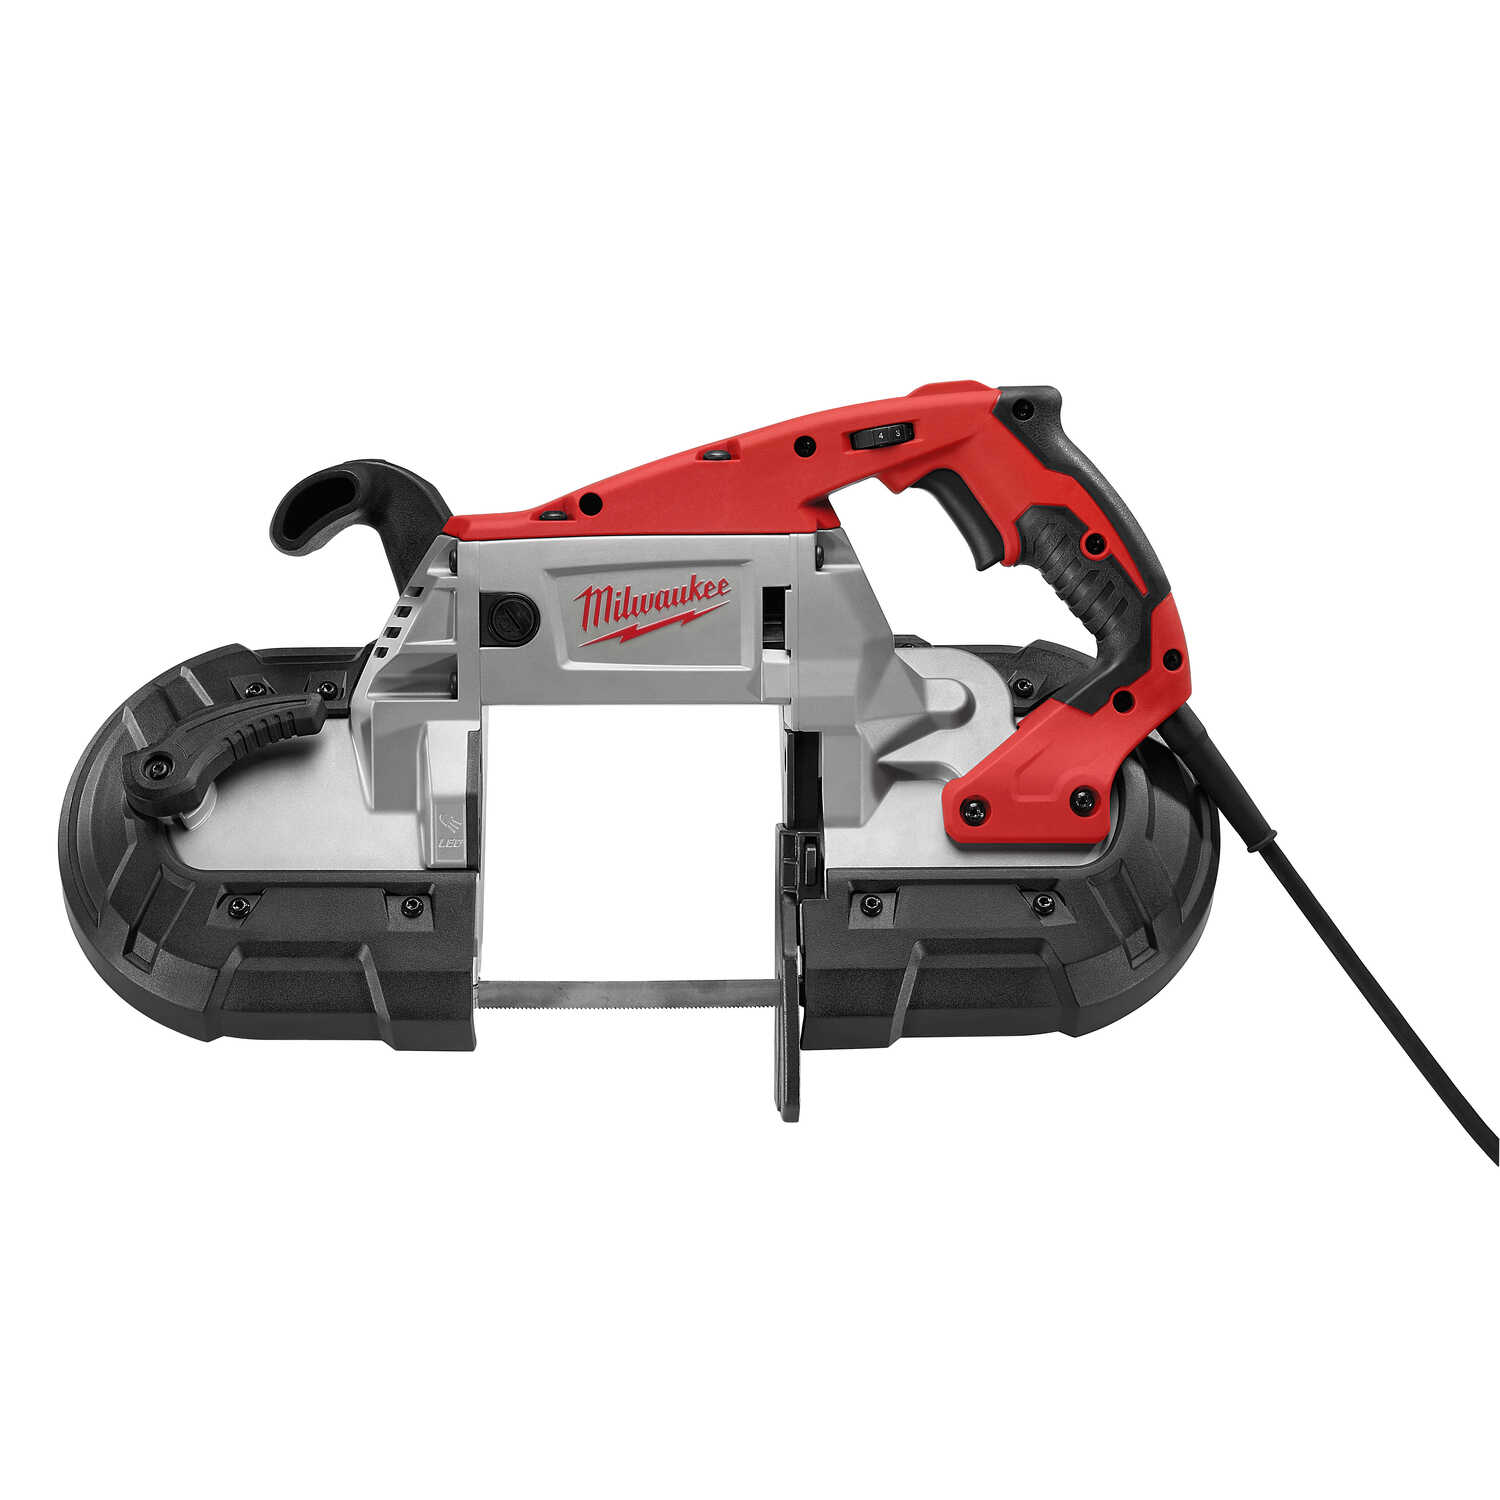 Milwaukee  44-7/8 in. Corded  Band Saw Kit  11 amps 120 volt 380